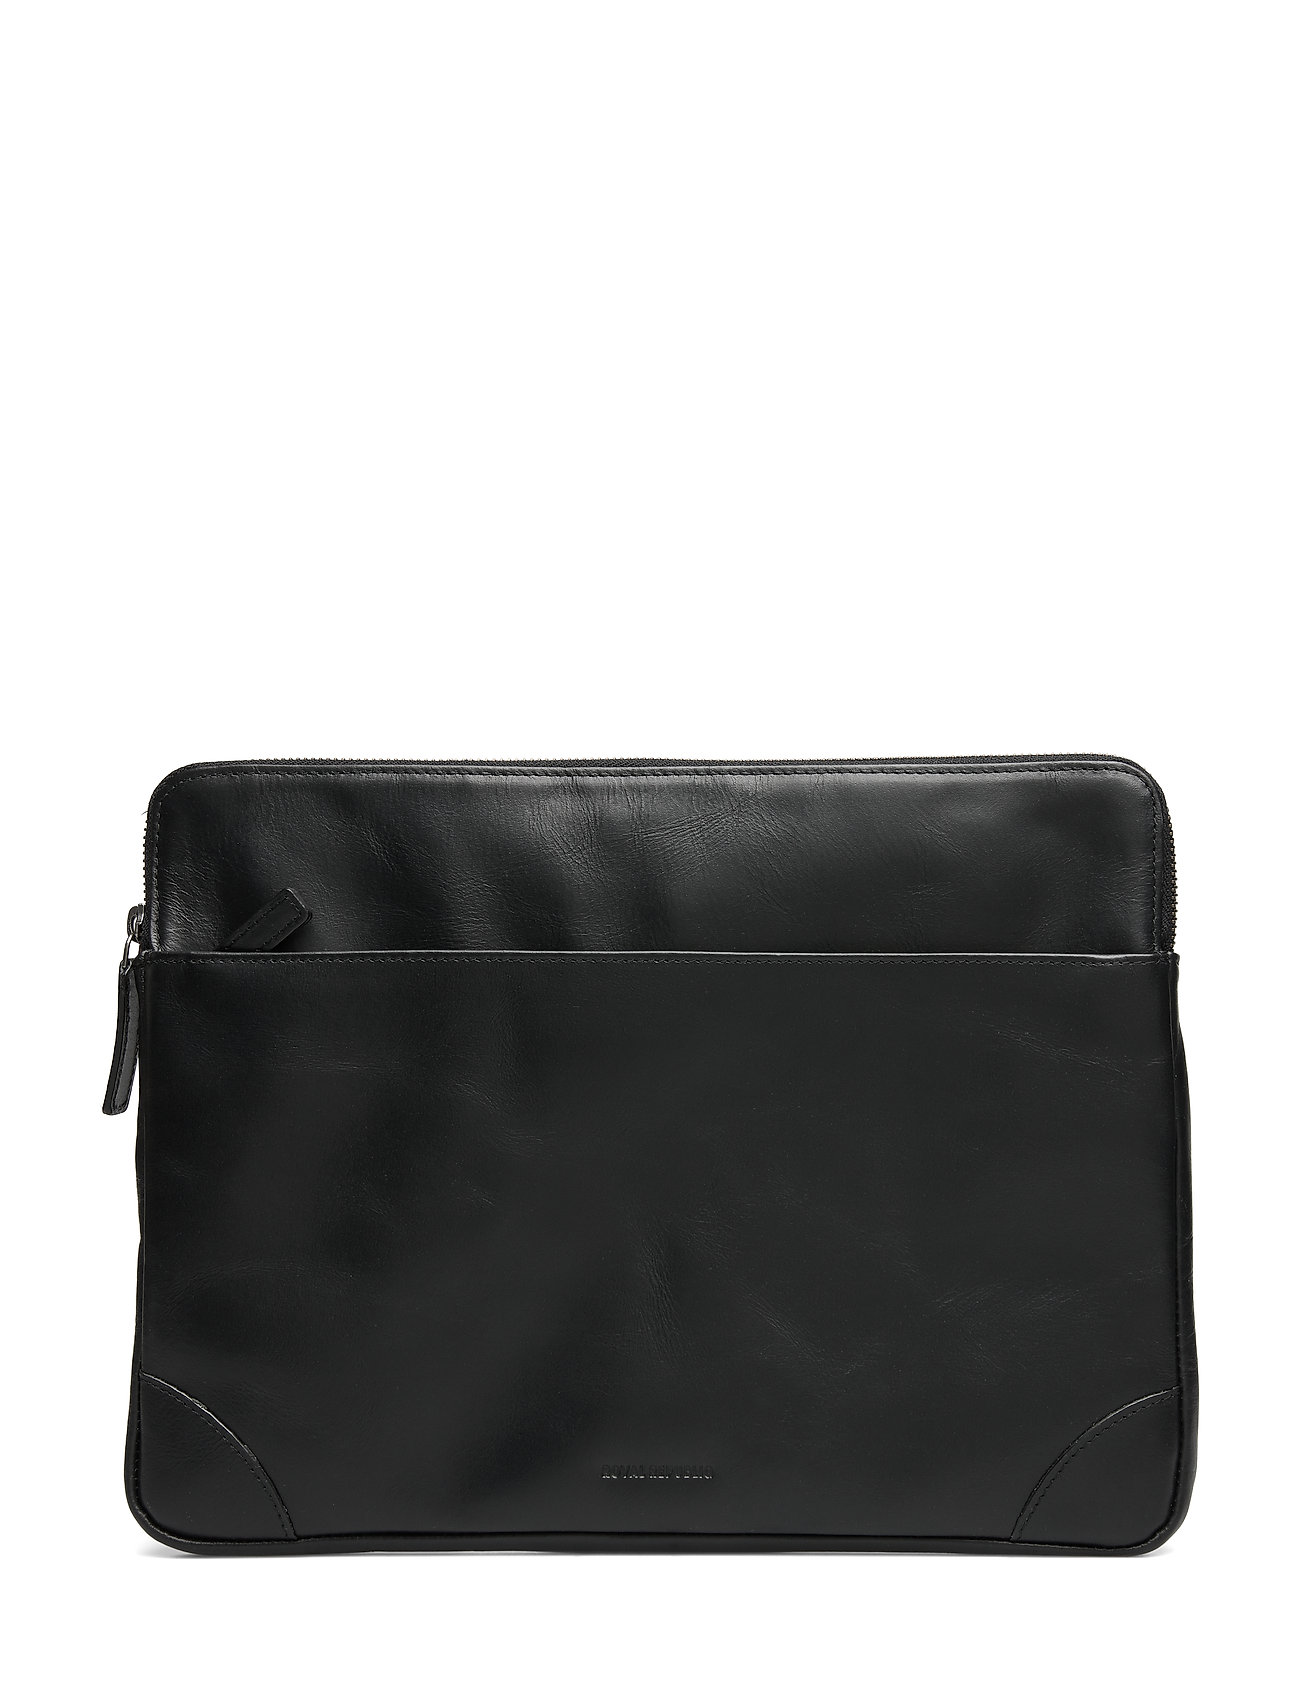 Royal RepubliQ Explorer Laptop Sleeve - BLACK